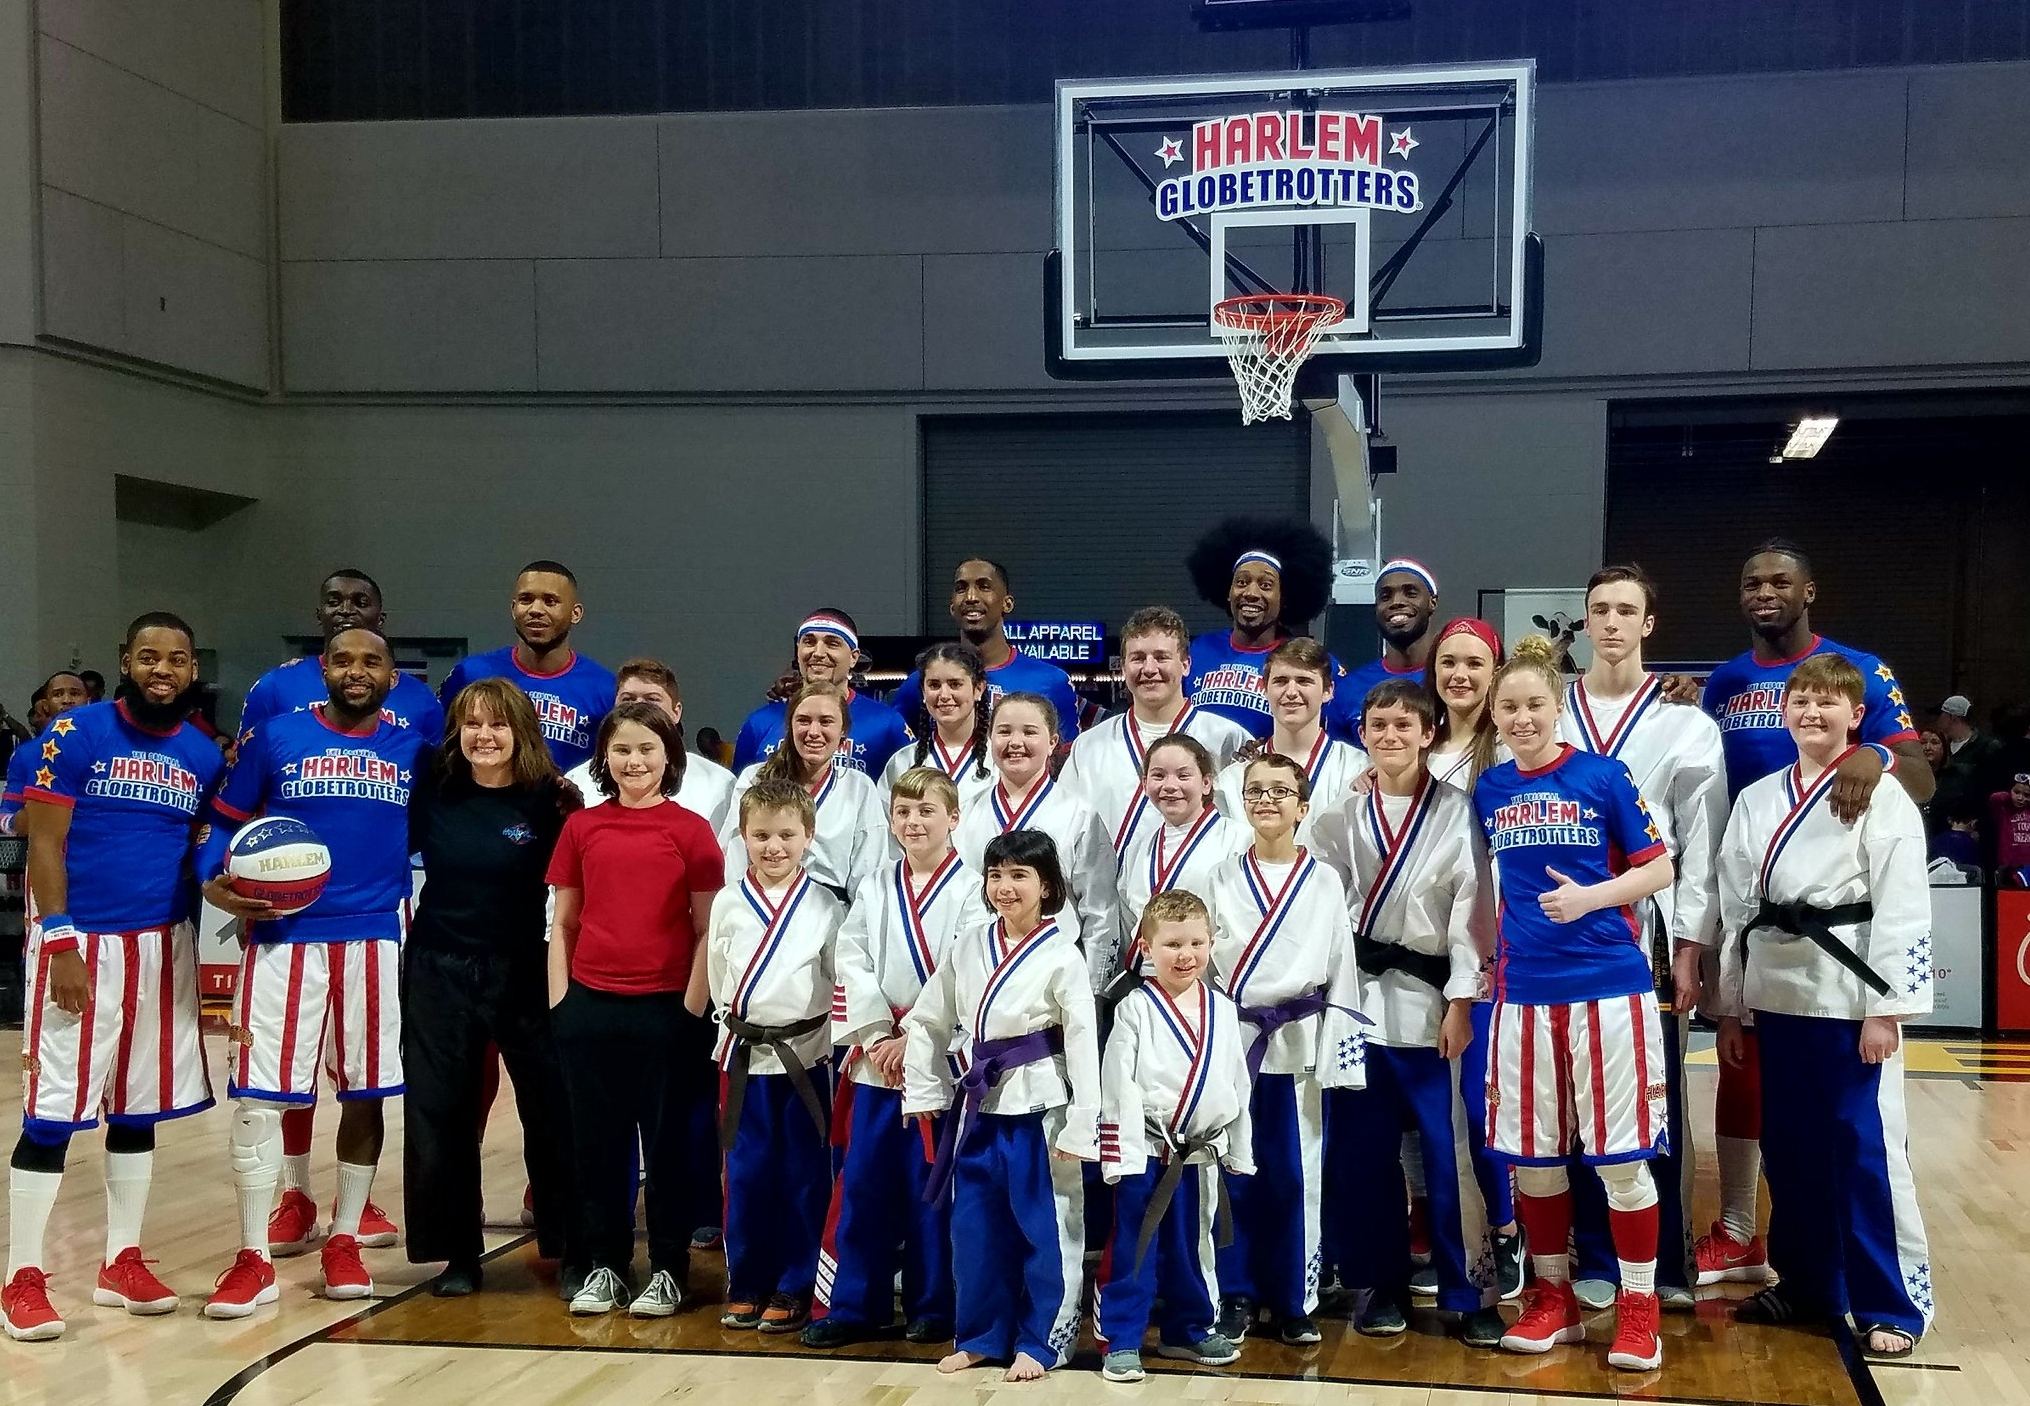 HiYa Demo Team - Opened for the Harlem Globetrotters, Dec 2018Opened for the Harlem Globetrotters, Mar 2018